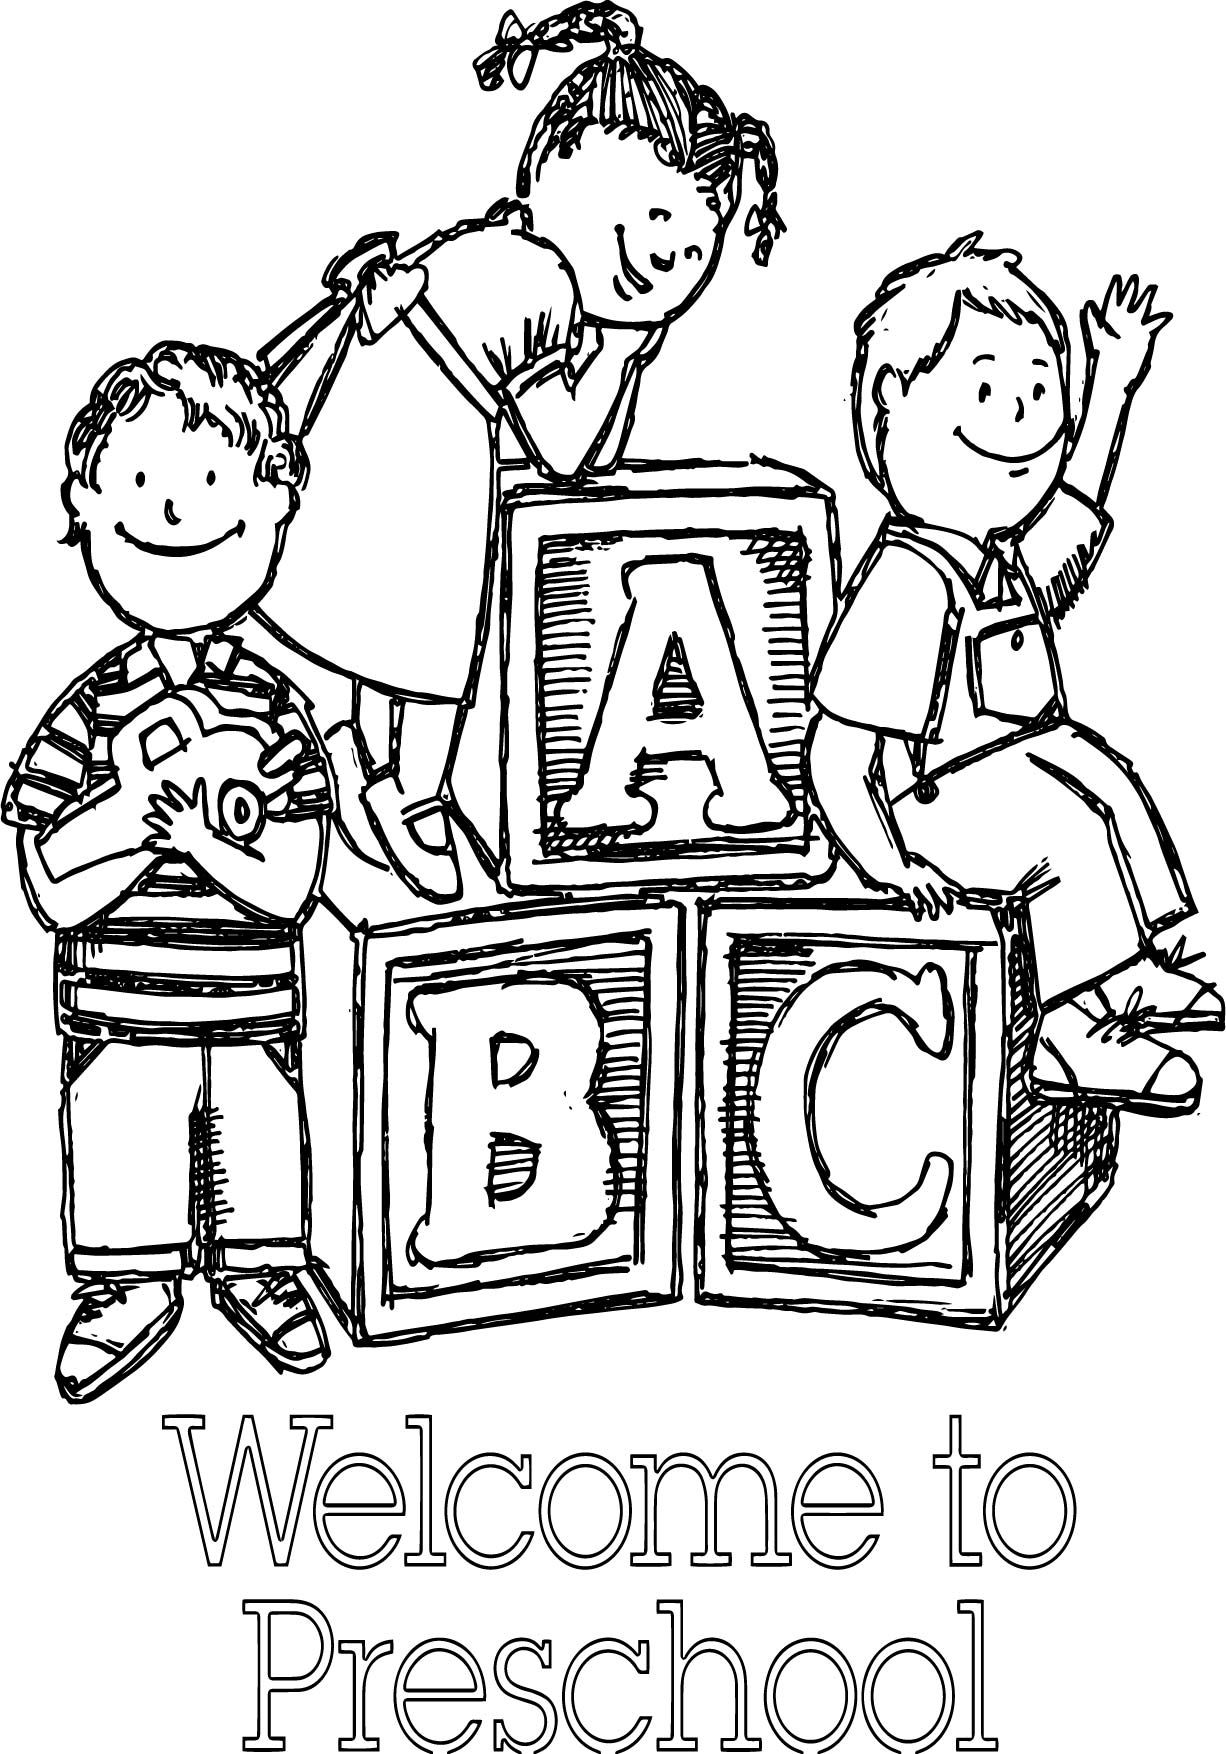 Welcome To Preschool Sketch Coloring Page